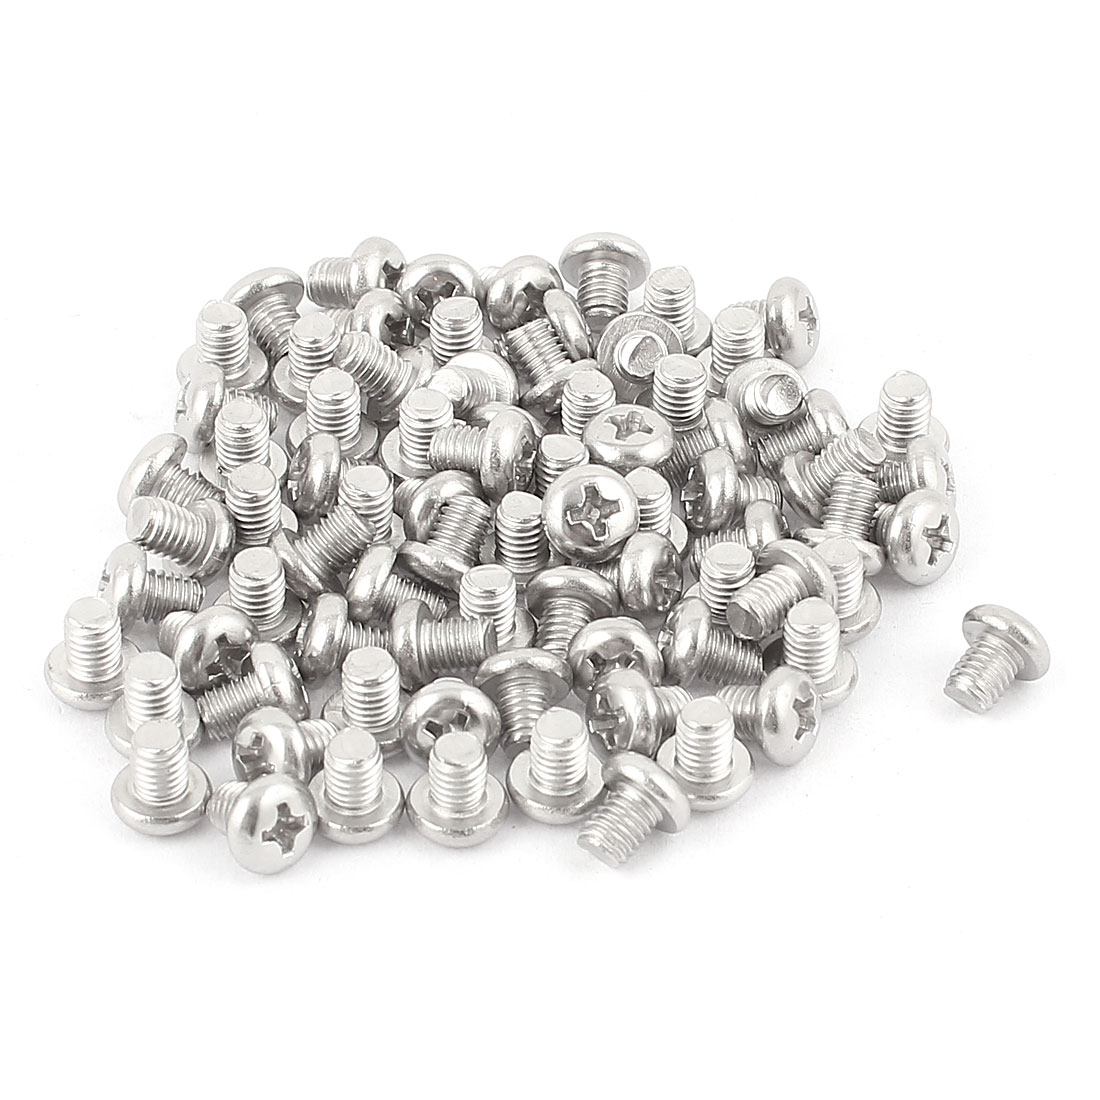 M5 x 6mm 304 Stainless Steel Crosshead Phillips Round Head Screws Bolt 60pcs